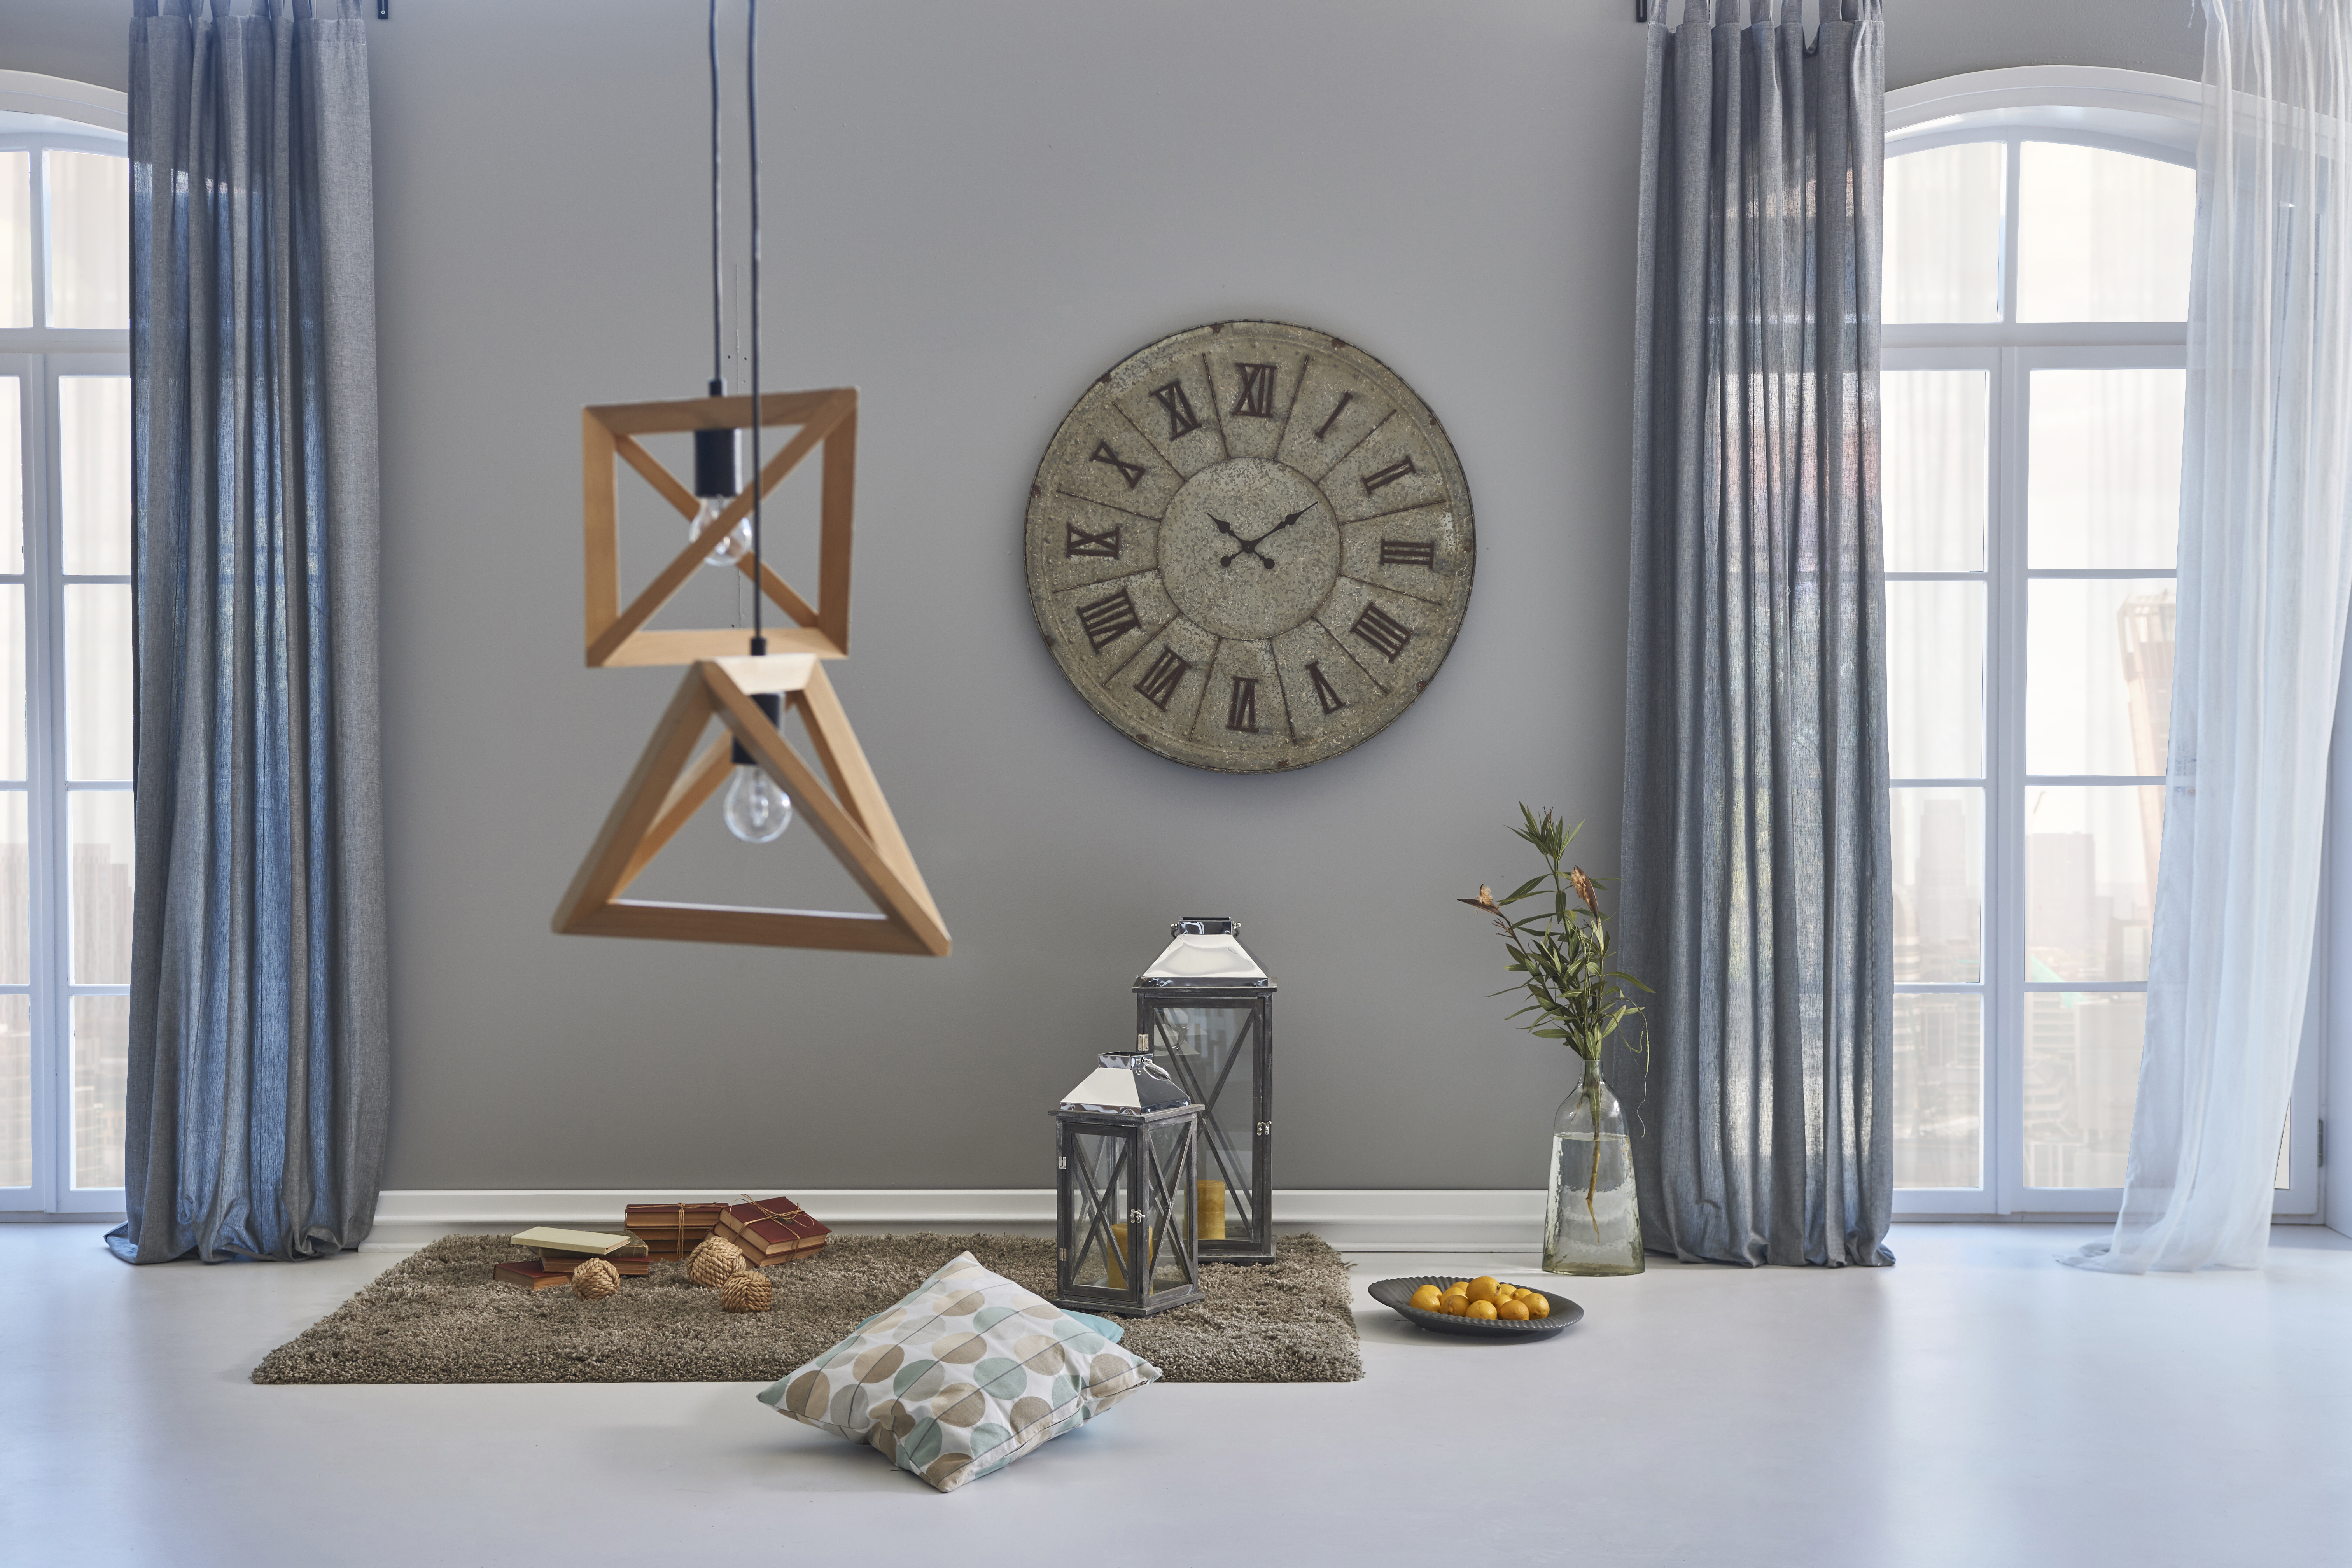 Statement Wall Clocks Oversized Wall Clocks A Statement In Your Home Decor